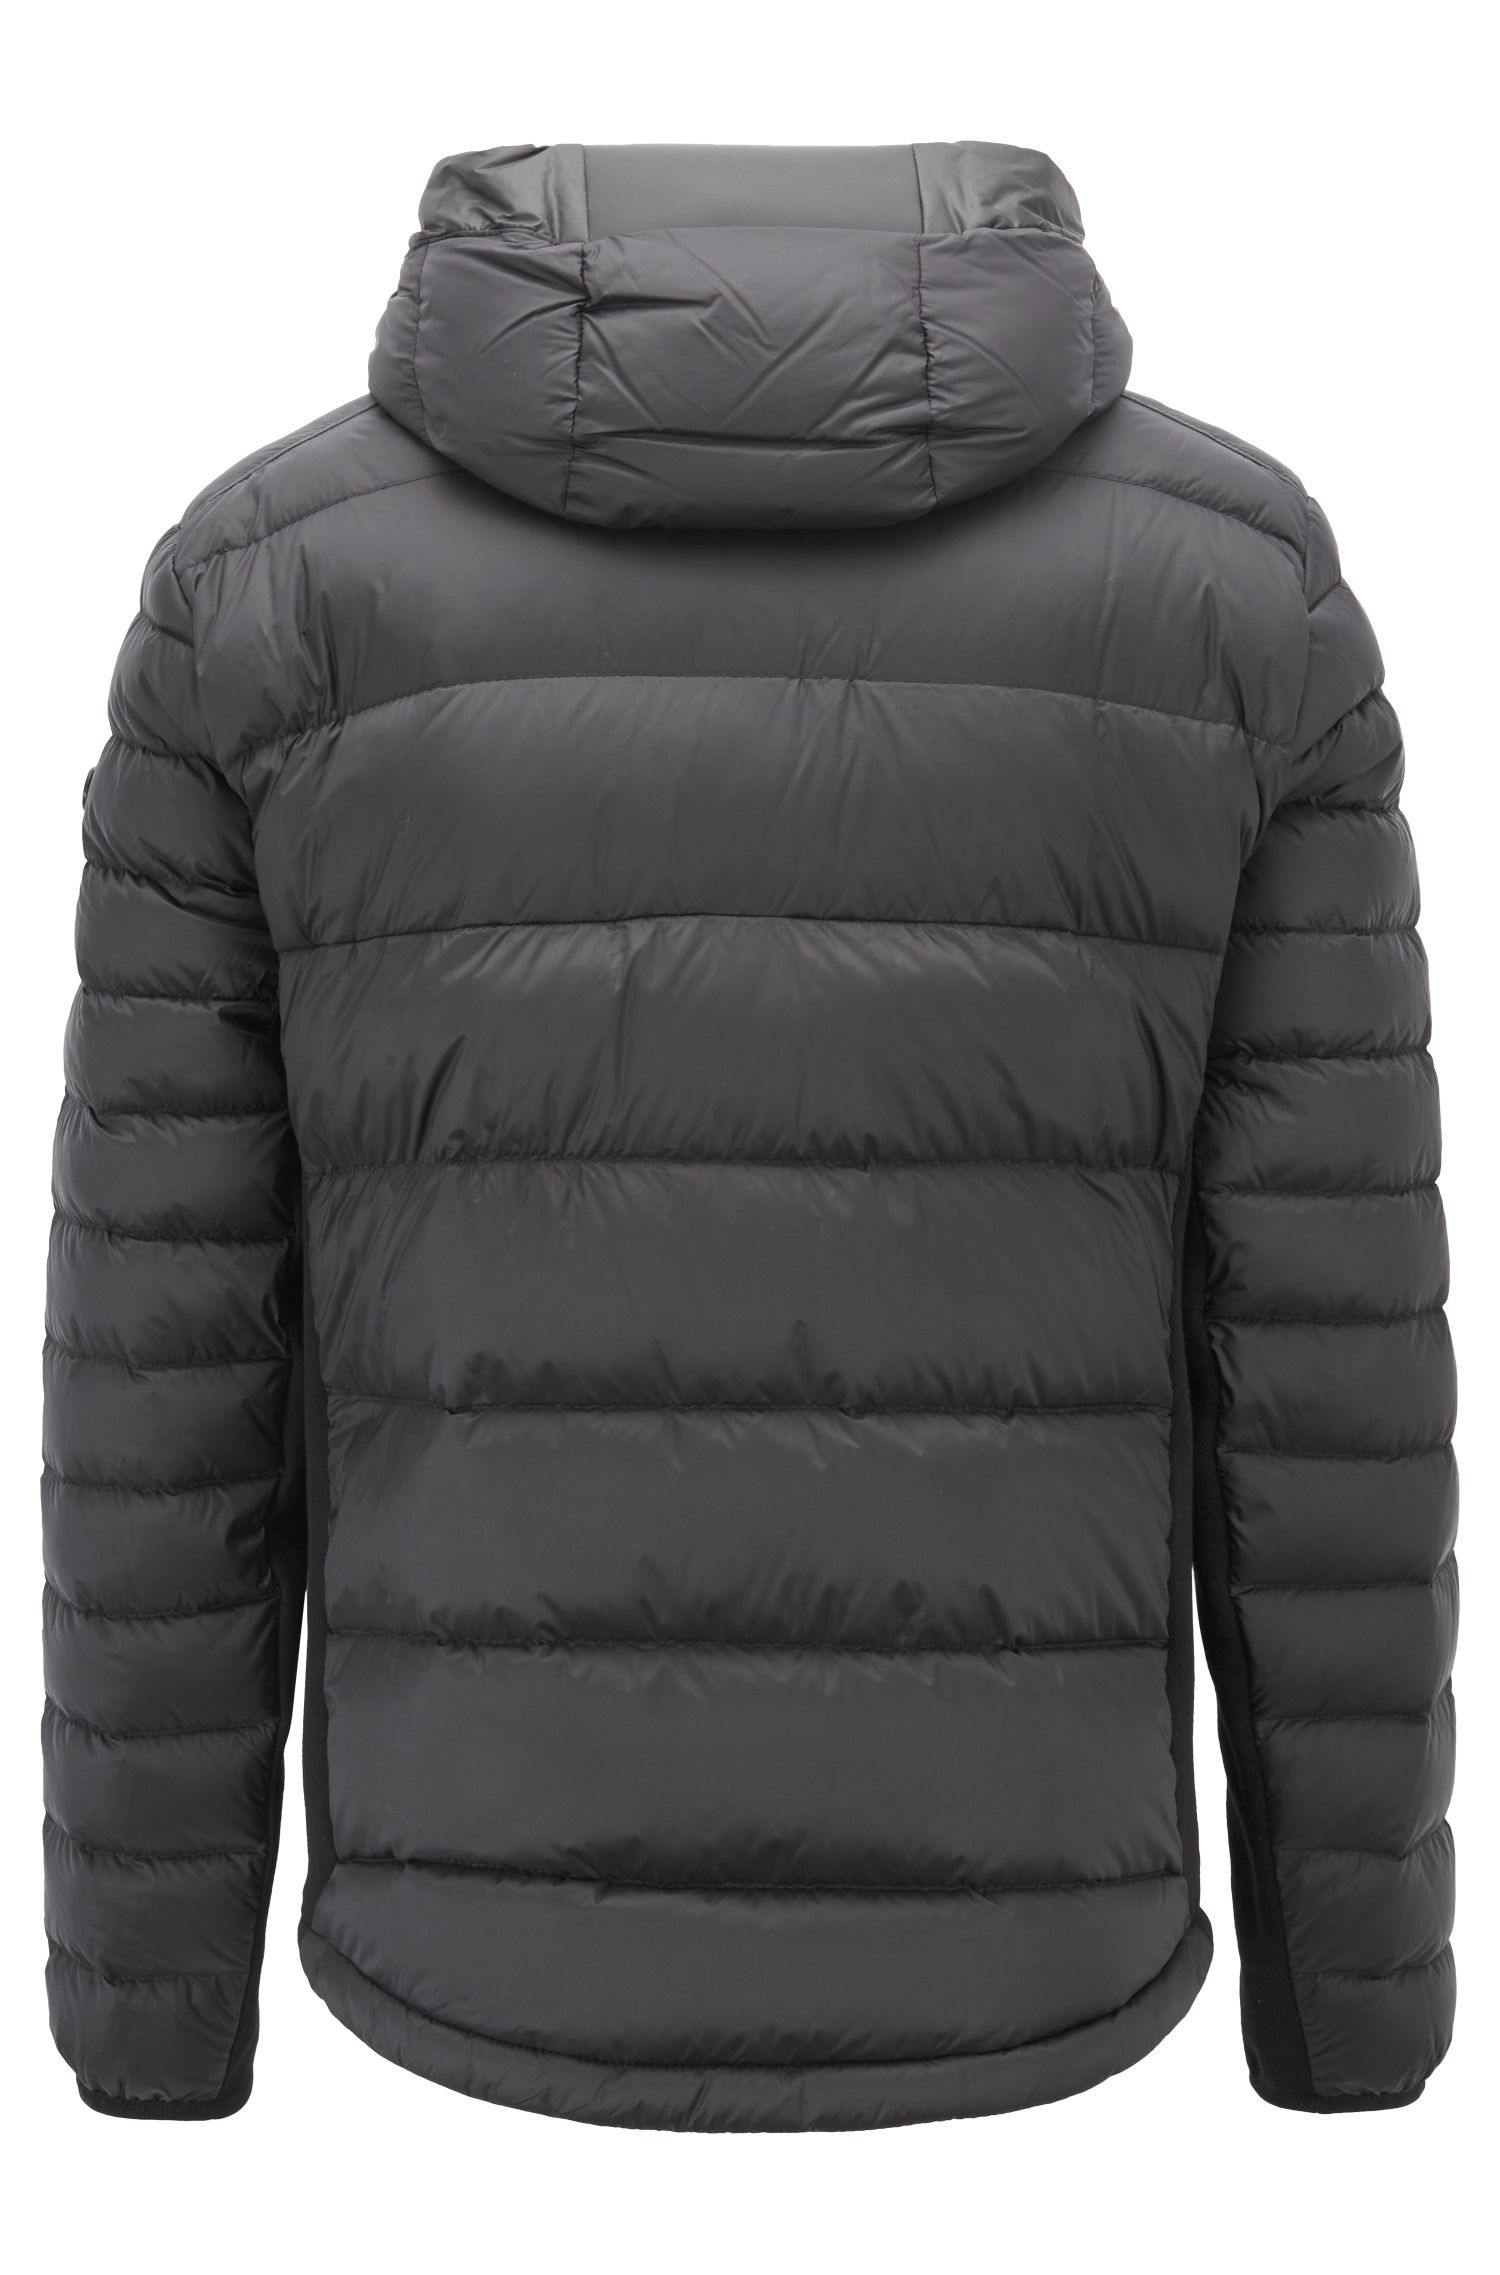 Link² down jacket in water-repellent taffeta with hood, Black